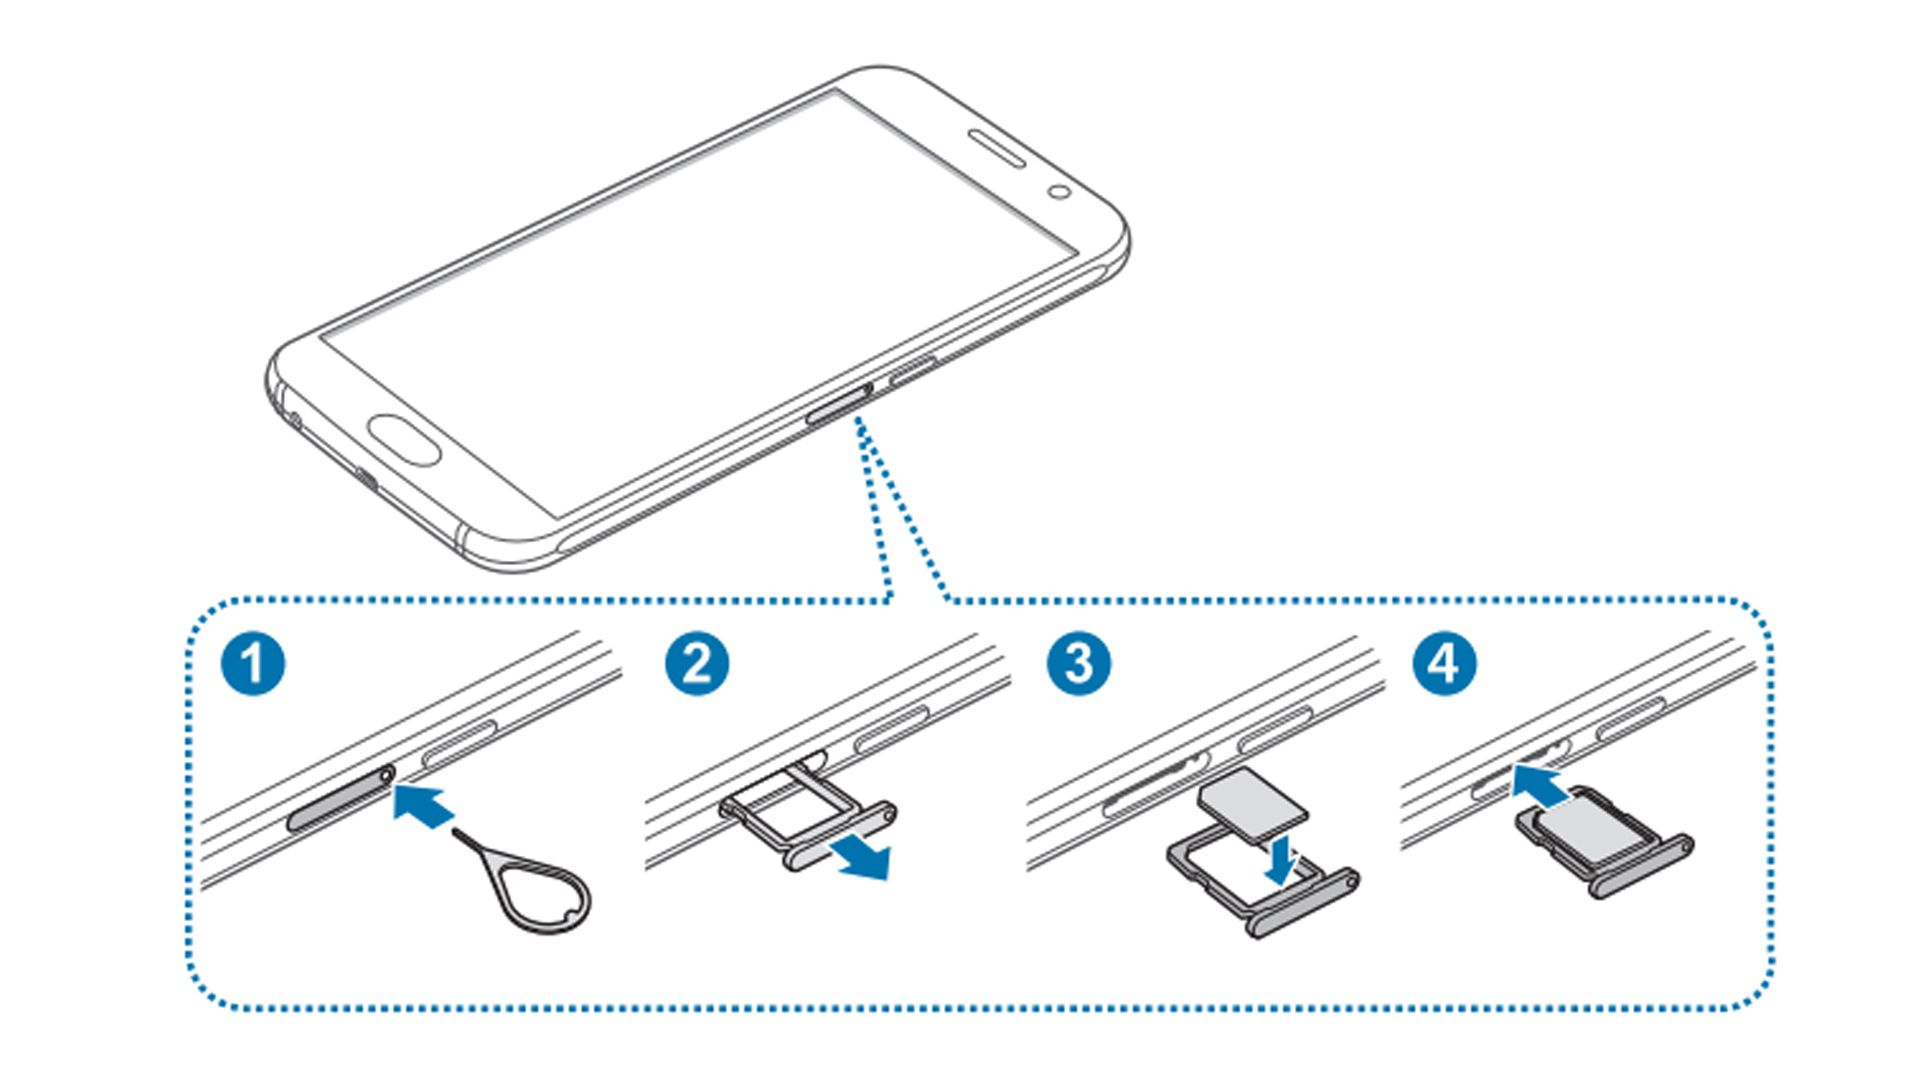 Swap SIM Cards on Your Galaxy S6 or S6 Edge